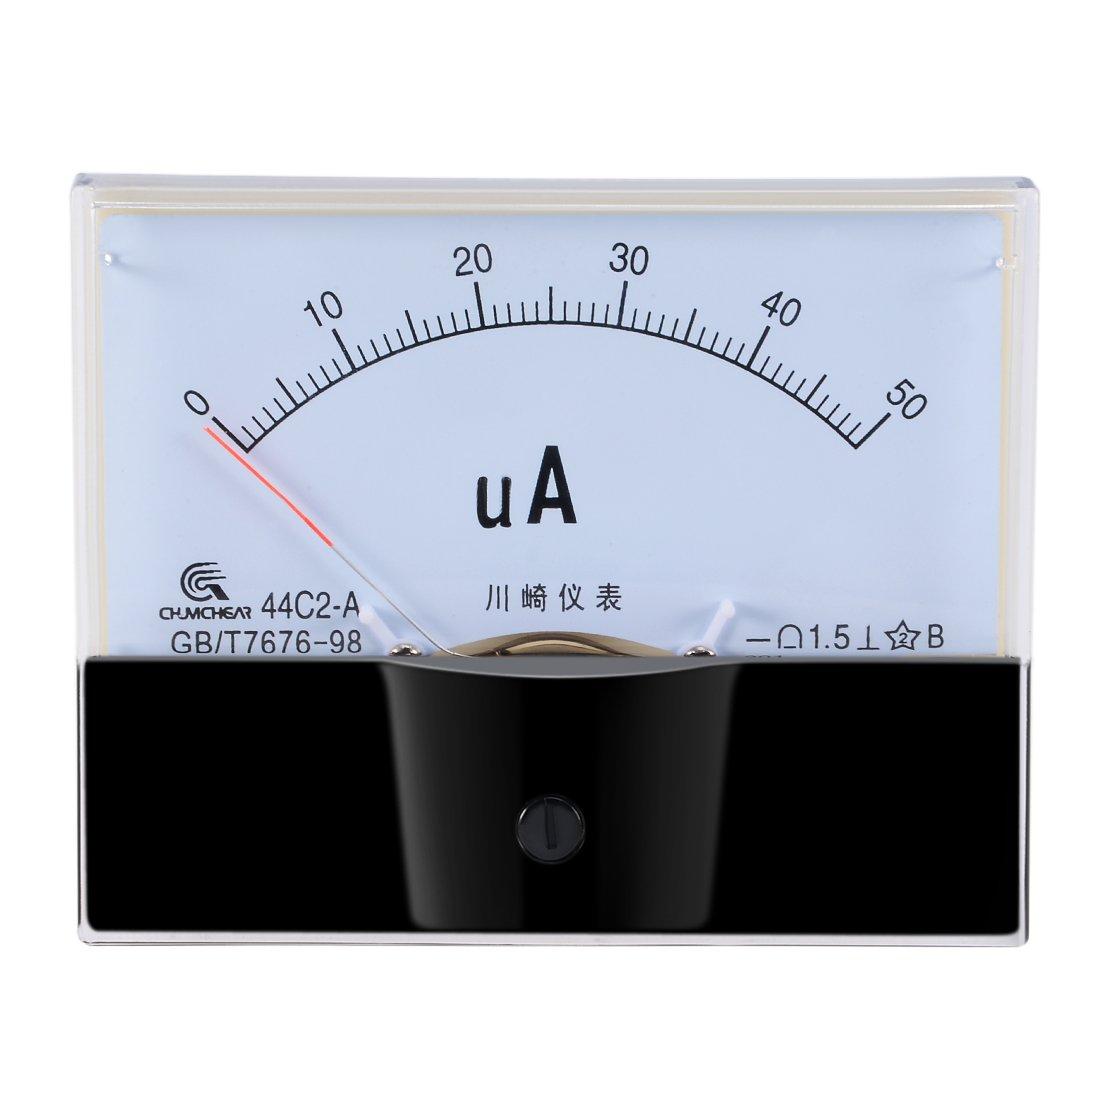 uxcell 44C2-A Analog Current Panel Meter DC 50uA Ammeter for Circuit Testing Ampere Tester Gauge 1 PCS